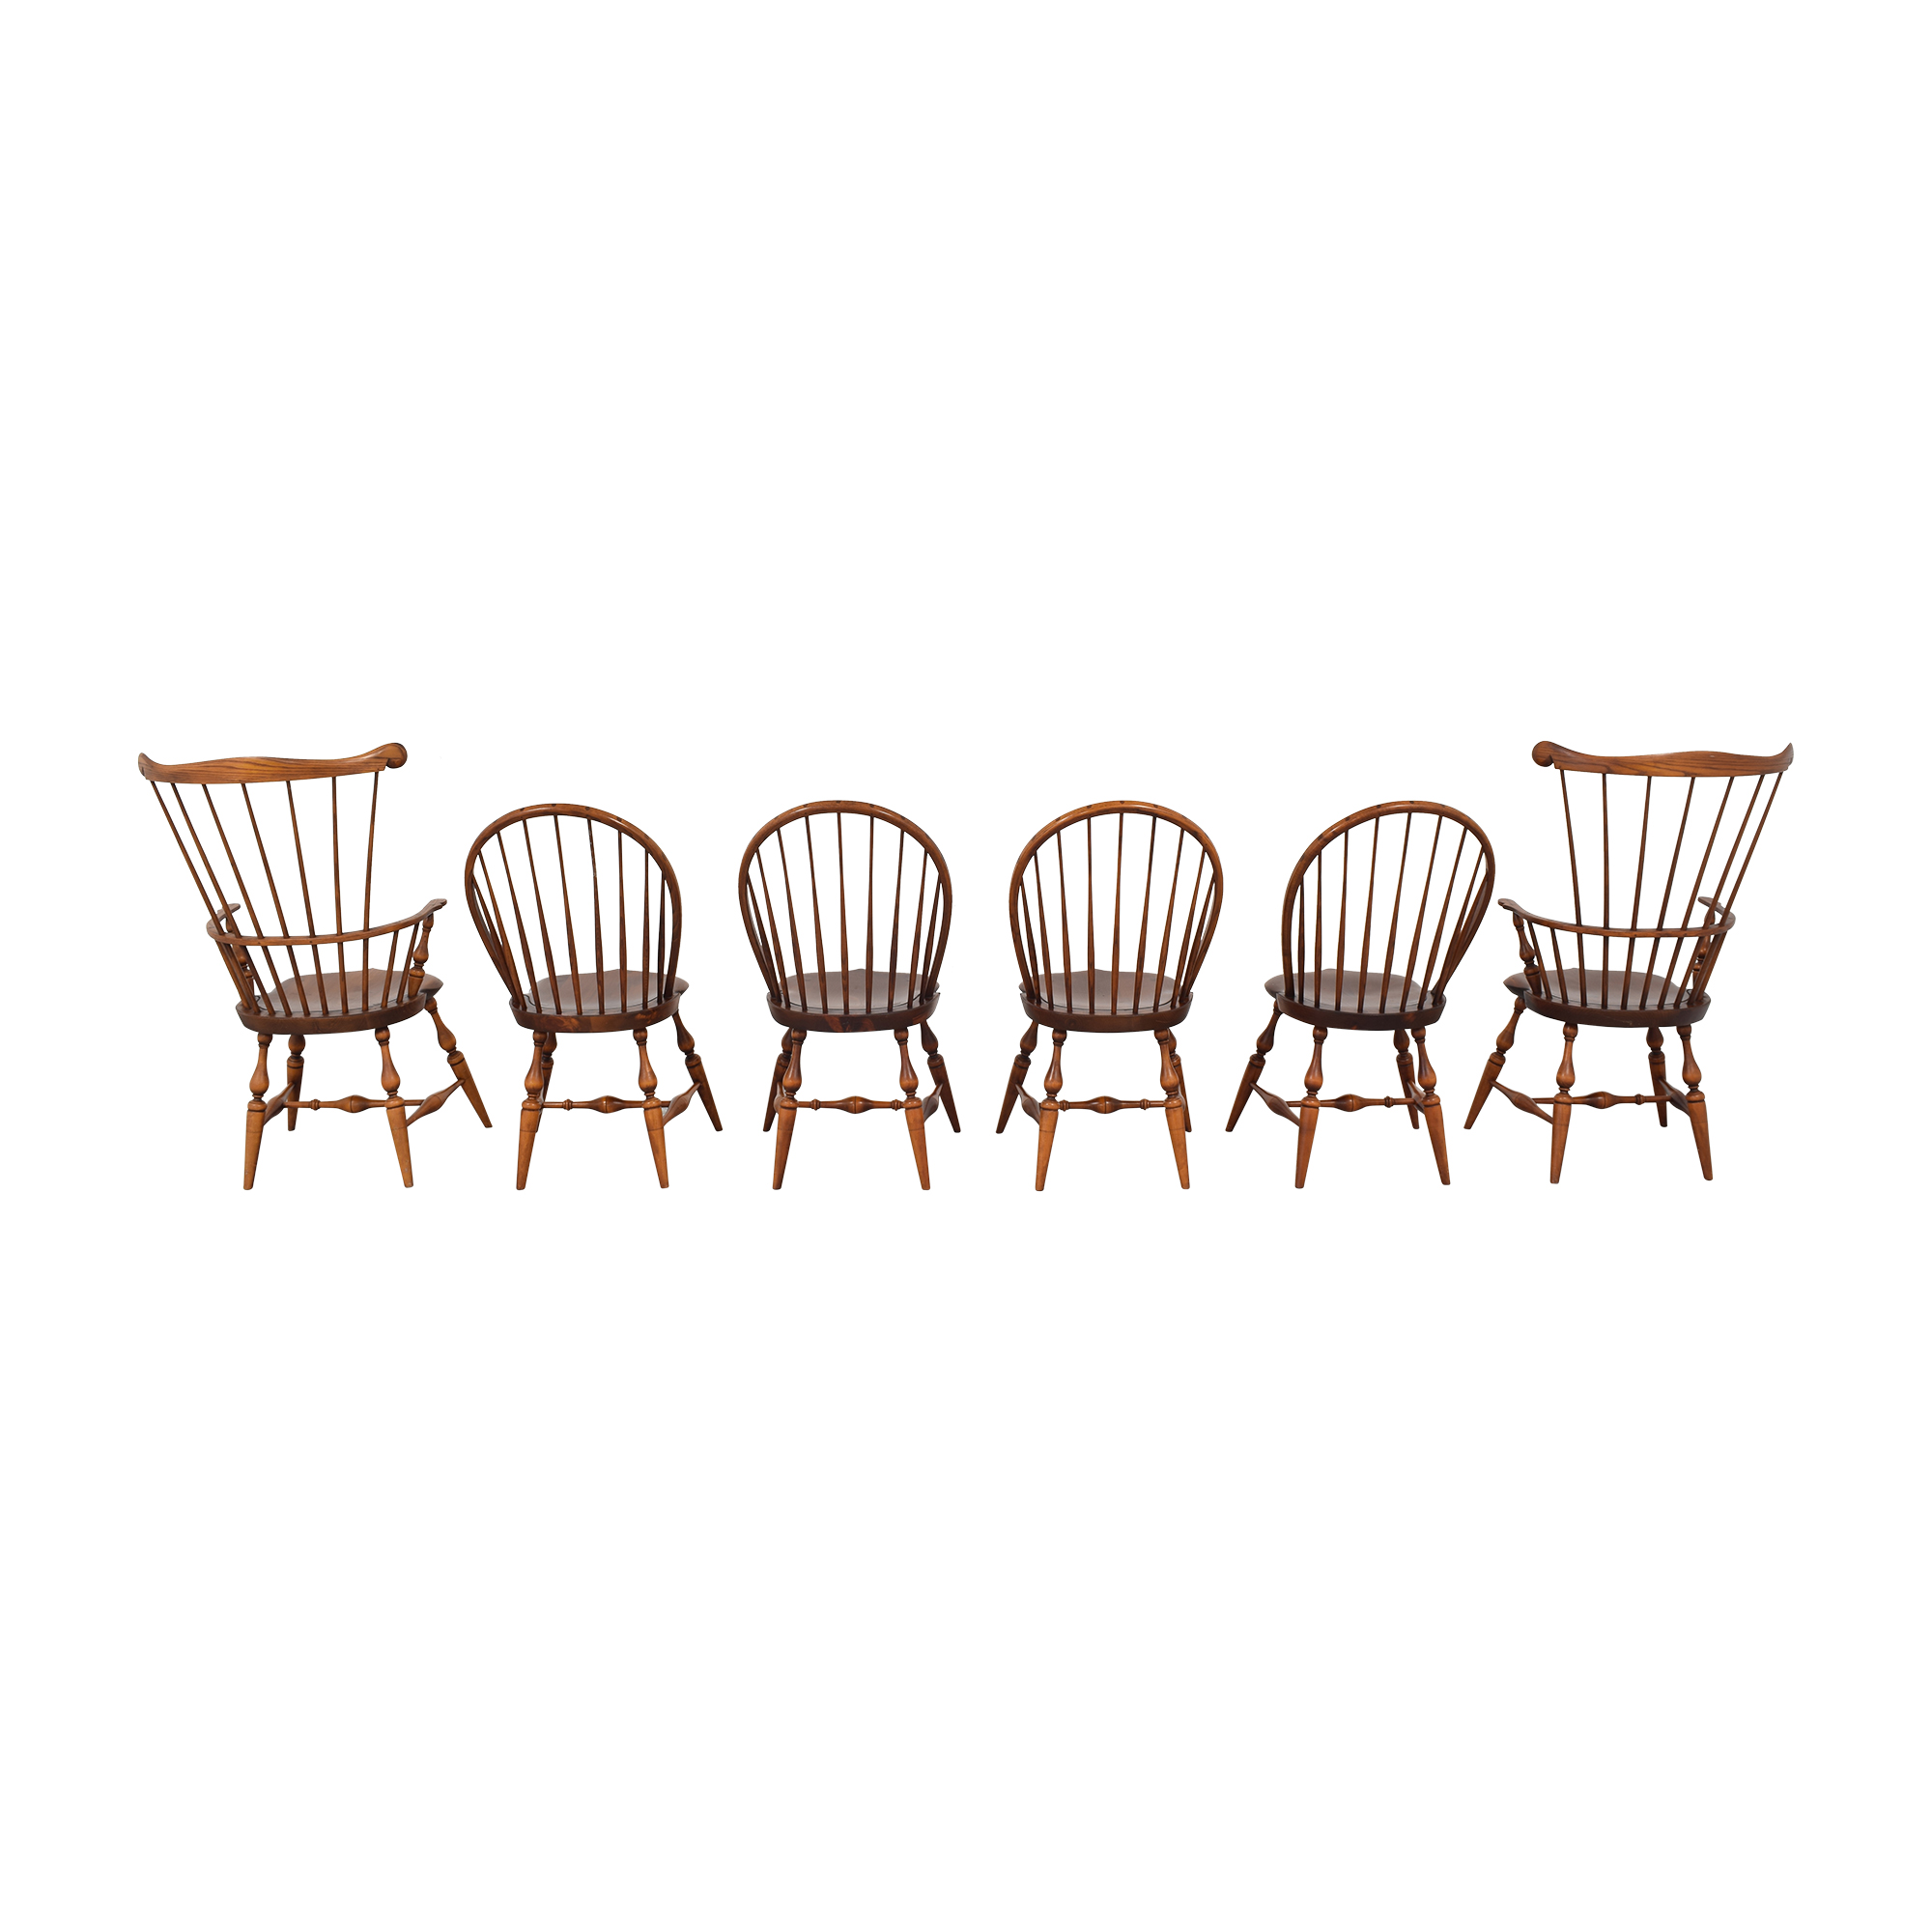 Warren Chair Works Warren Chair Works New England Dining Chairs on sale